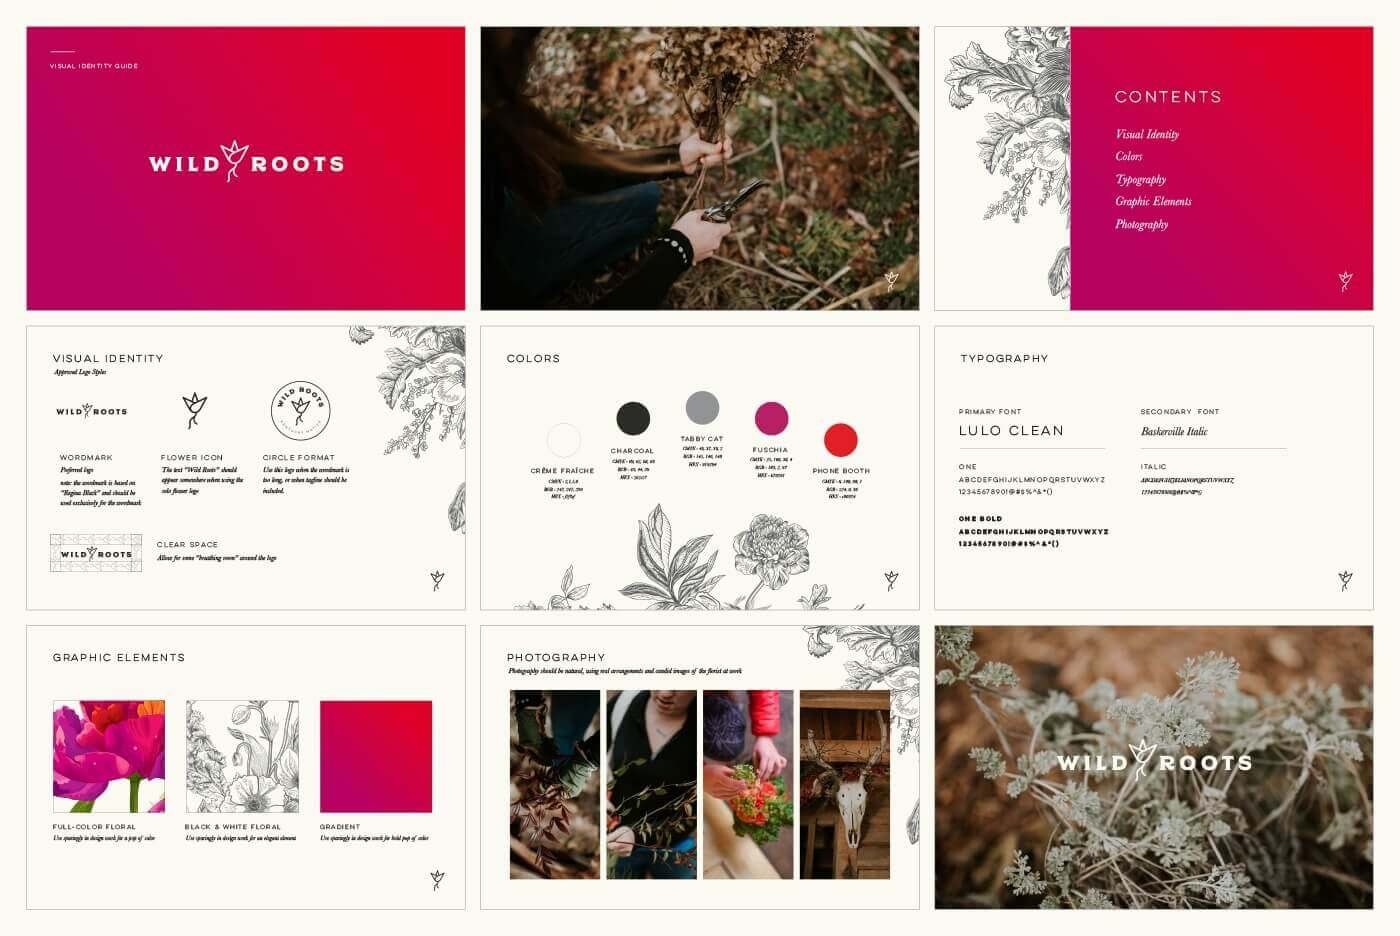 grid of wild roots images including color palette, fonts, and business owner arranging flowers